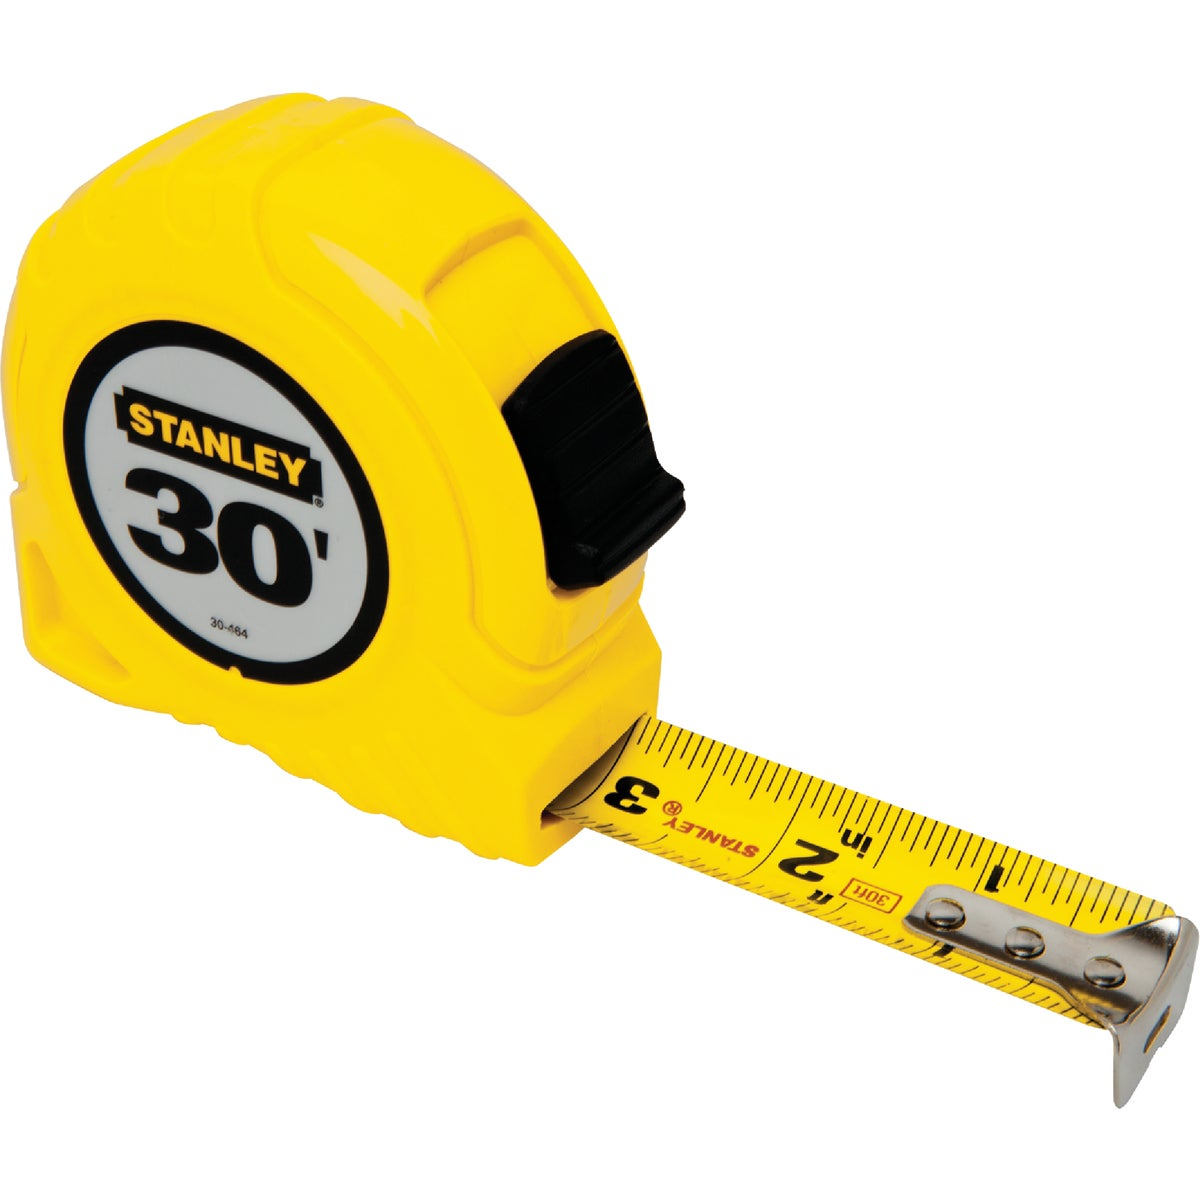 "1""X30' YEL TAPE RULE - 30-464 by Stanley Tools"